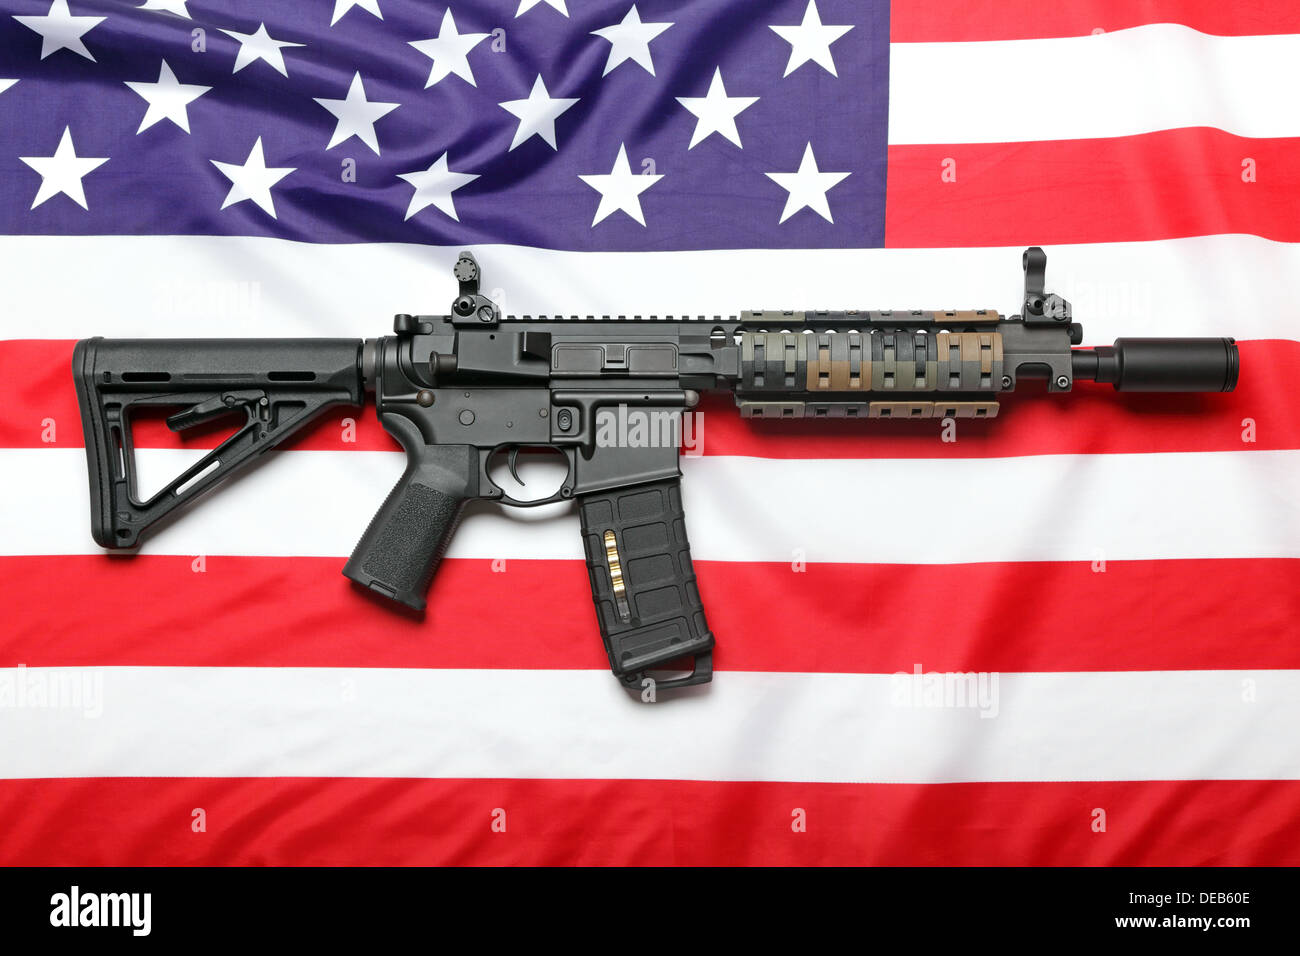 The 'Black Rifle' AR15 carbine and the flag of USA - Stock Image